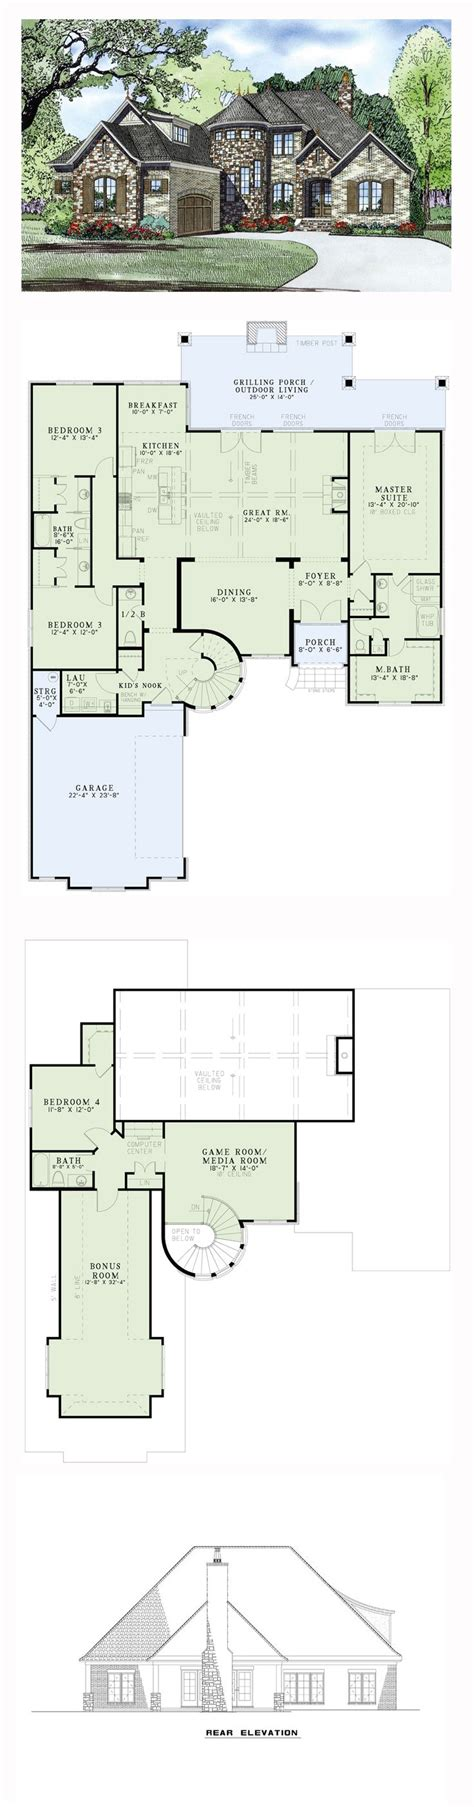 bilbo baggins house floor plan bilbo baggins house floor plan bilbo baggins house floor